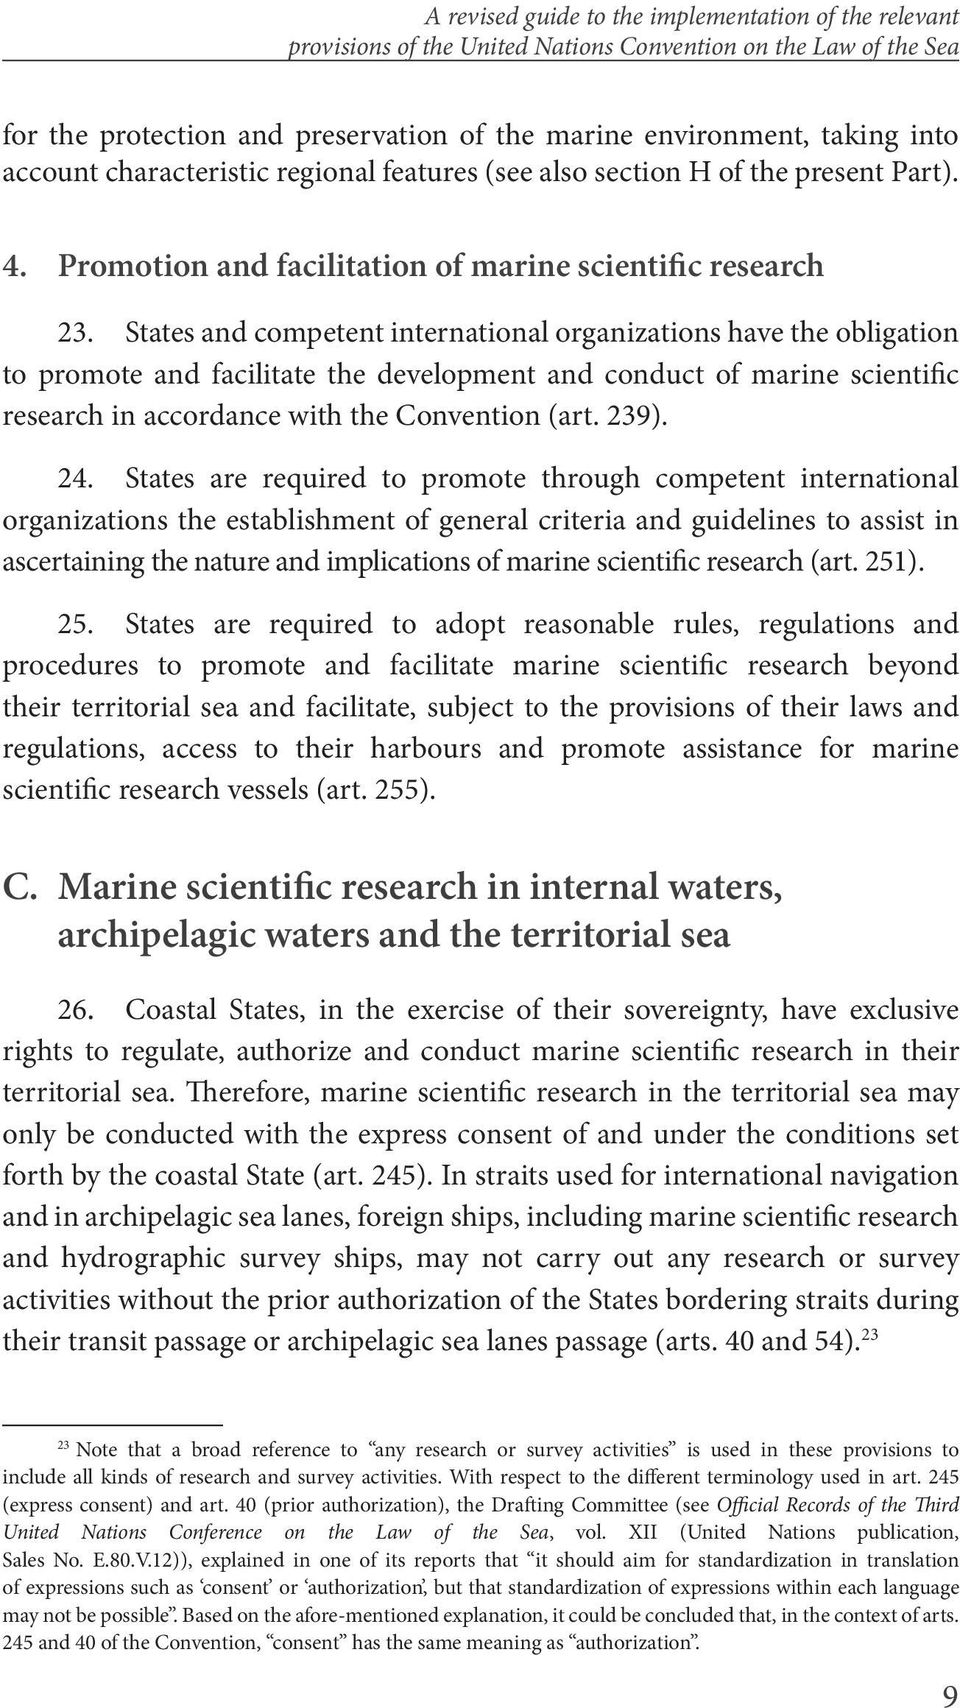 States and competent international organizations have the obligation to promote and facilitate the development and conduct of marine scientific research in accordance with the Convention (art. 239).